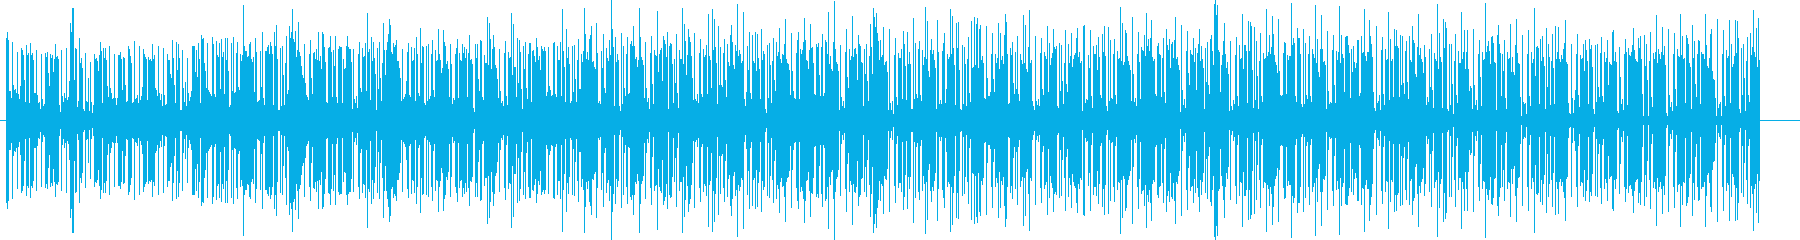 An up-tempo and cool irregular rhythm song's reproduced waveform